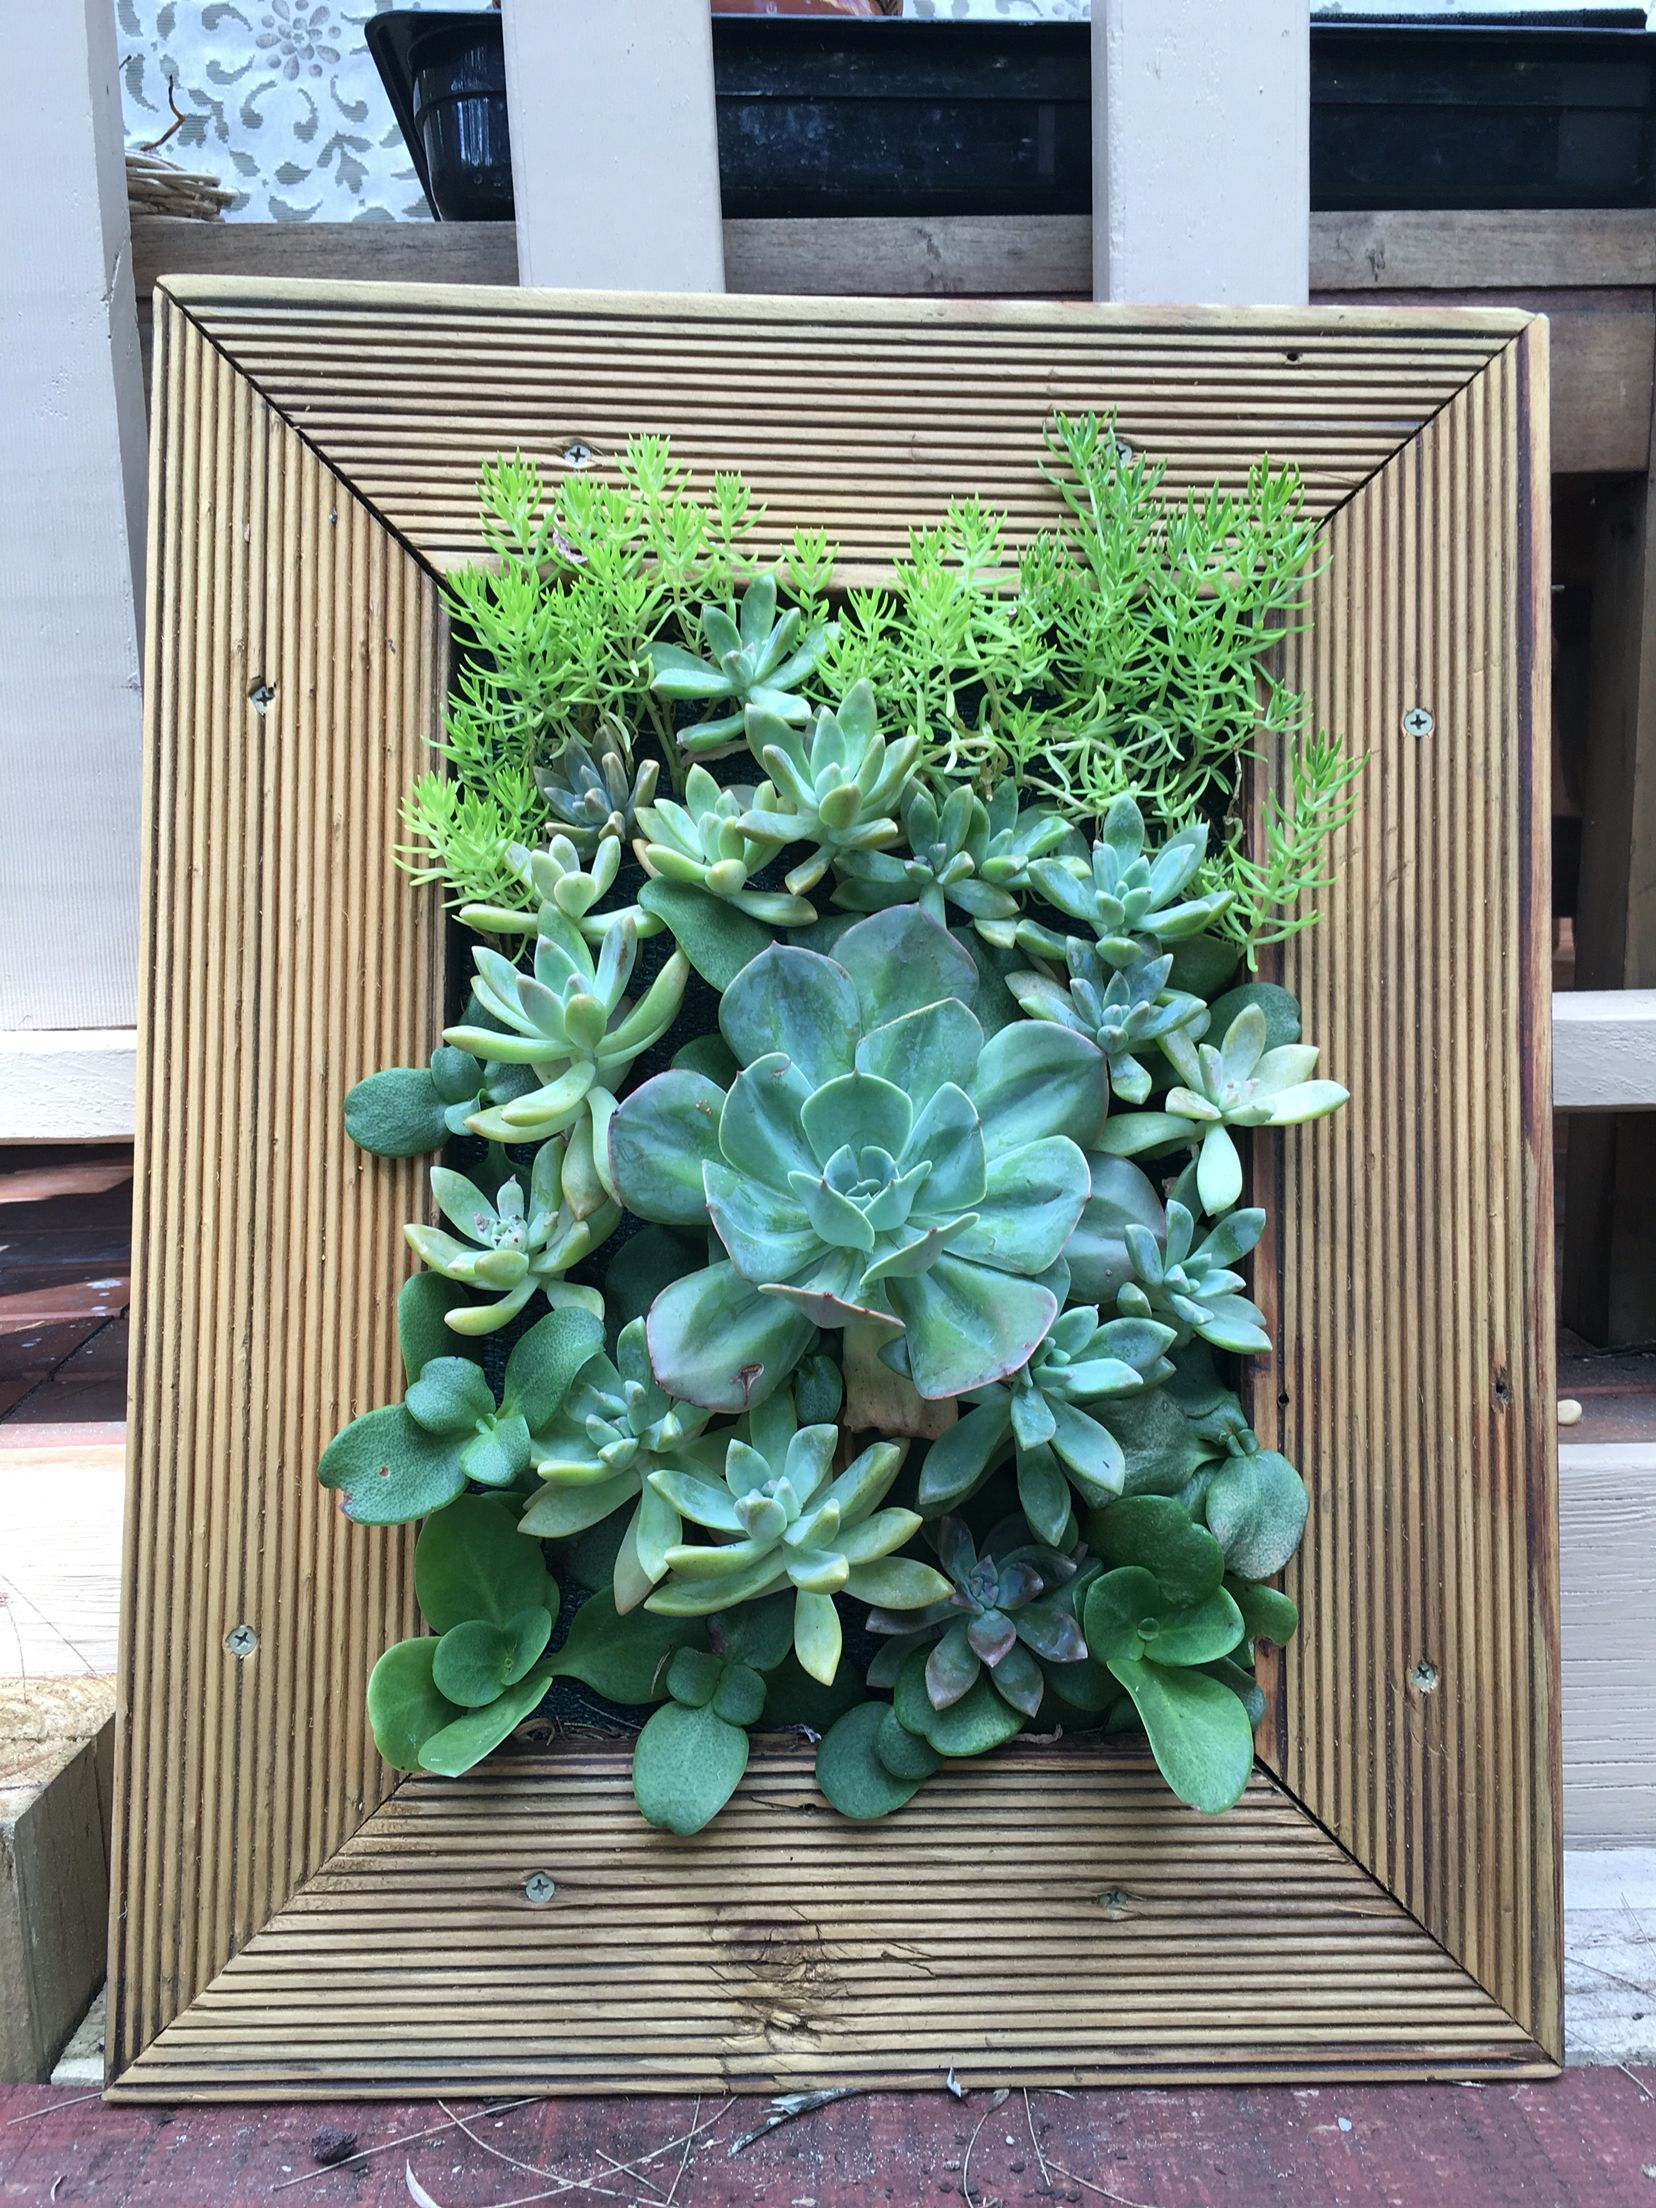 Living wall using recycled timber decking.